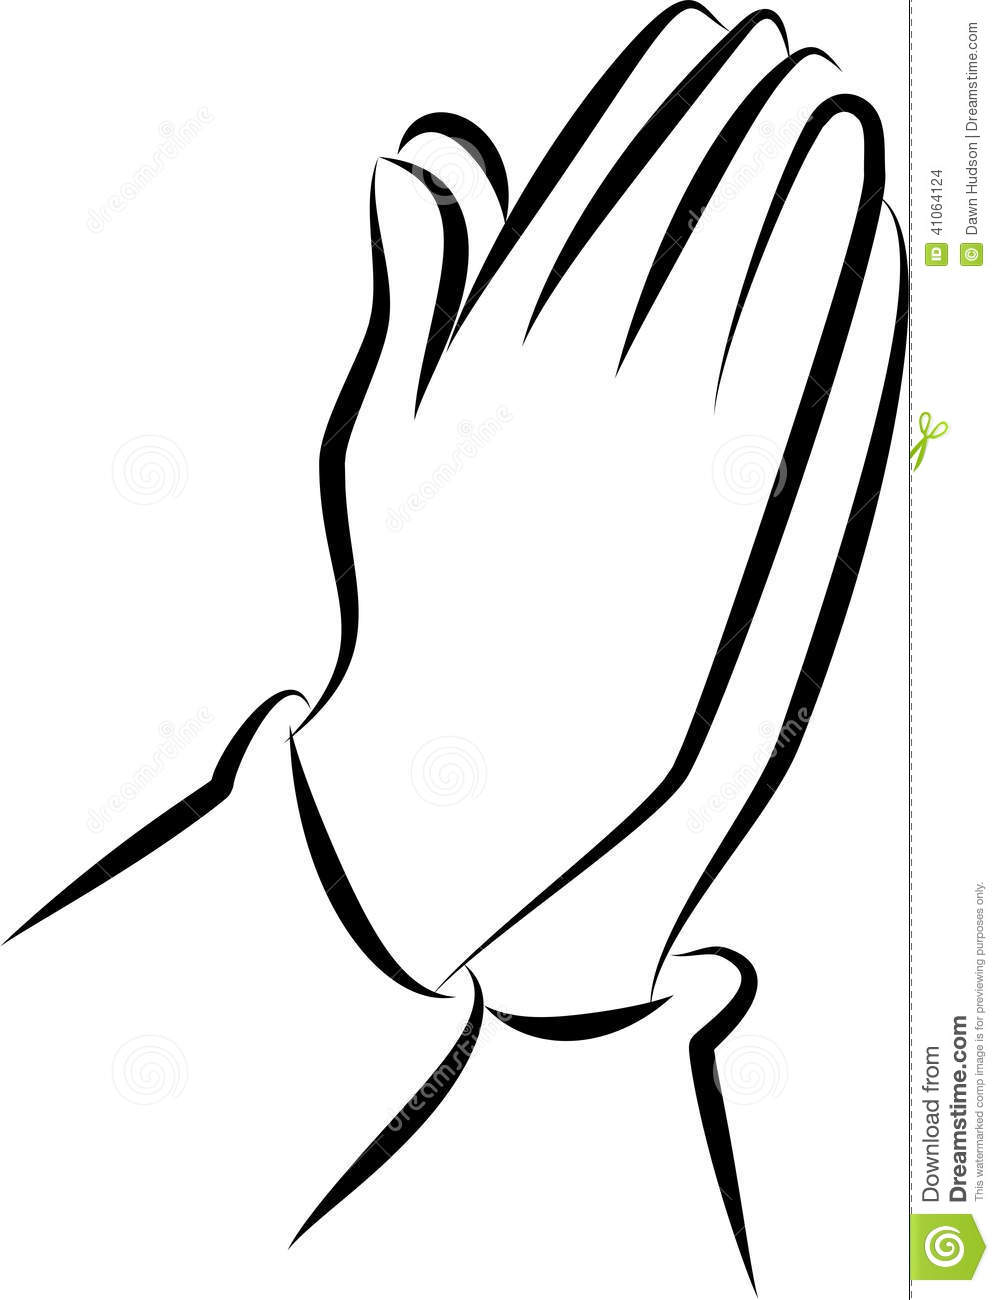 Simple Black And White Line Art : Praying hands clip art stock illustration image